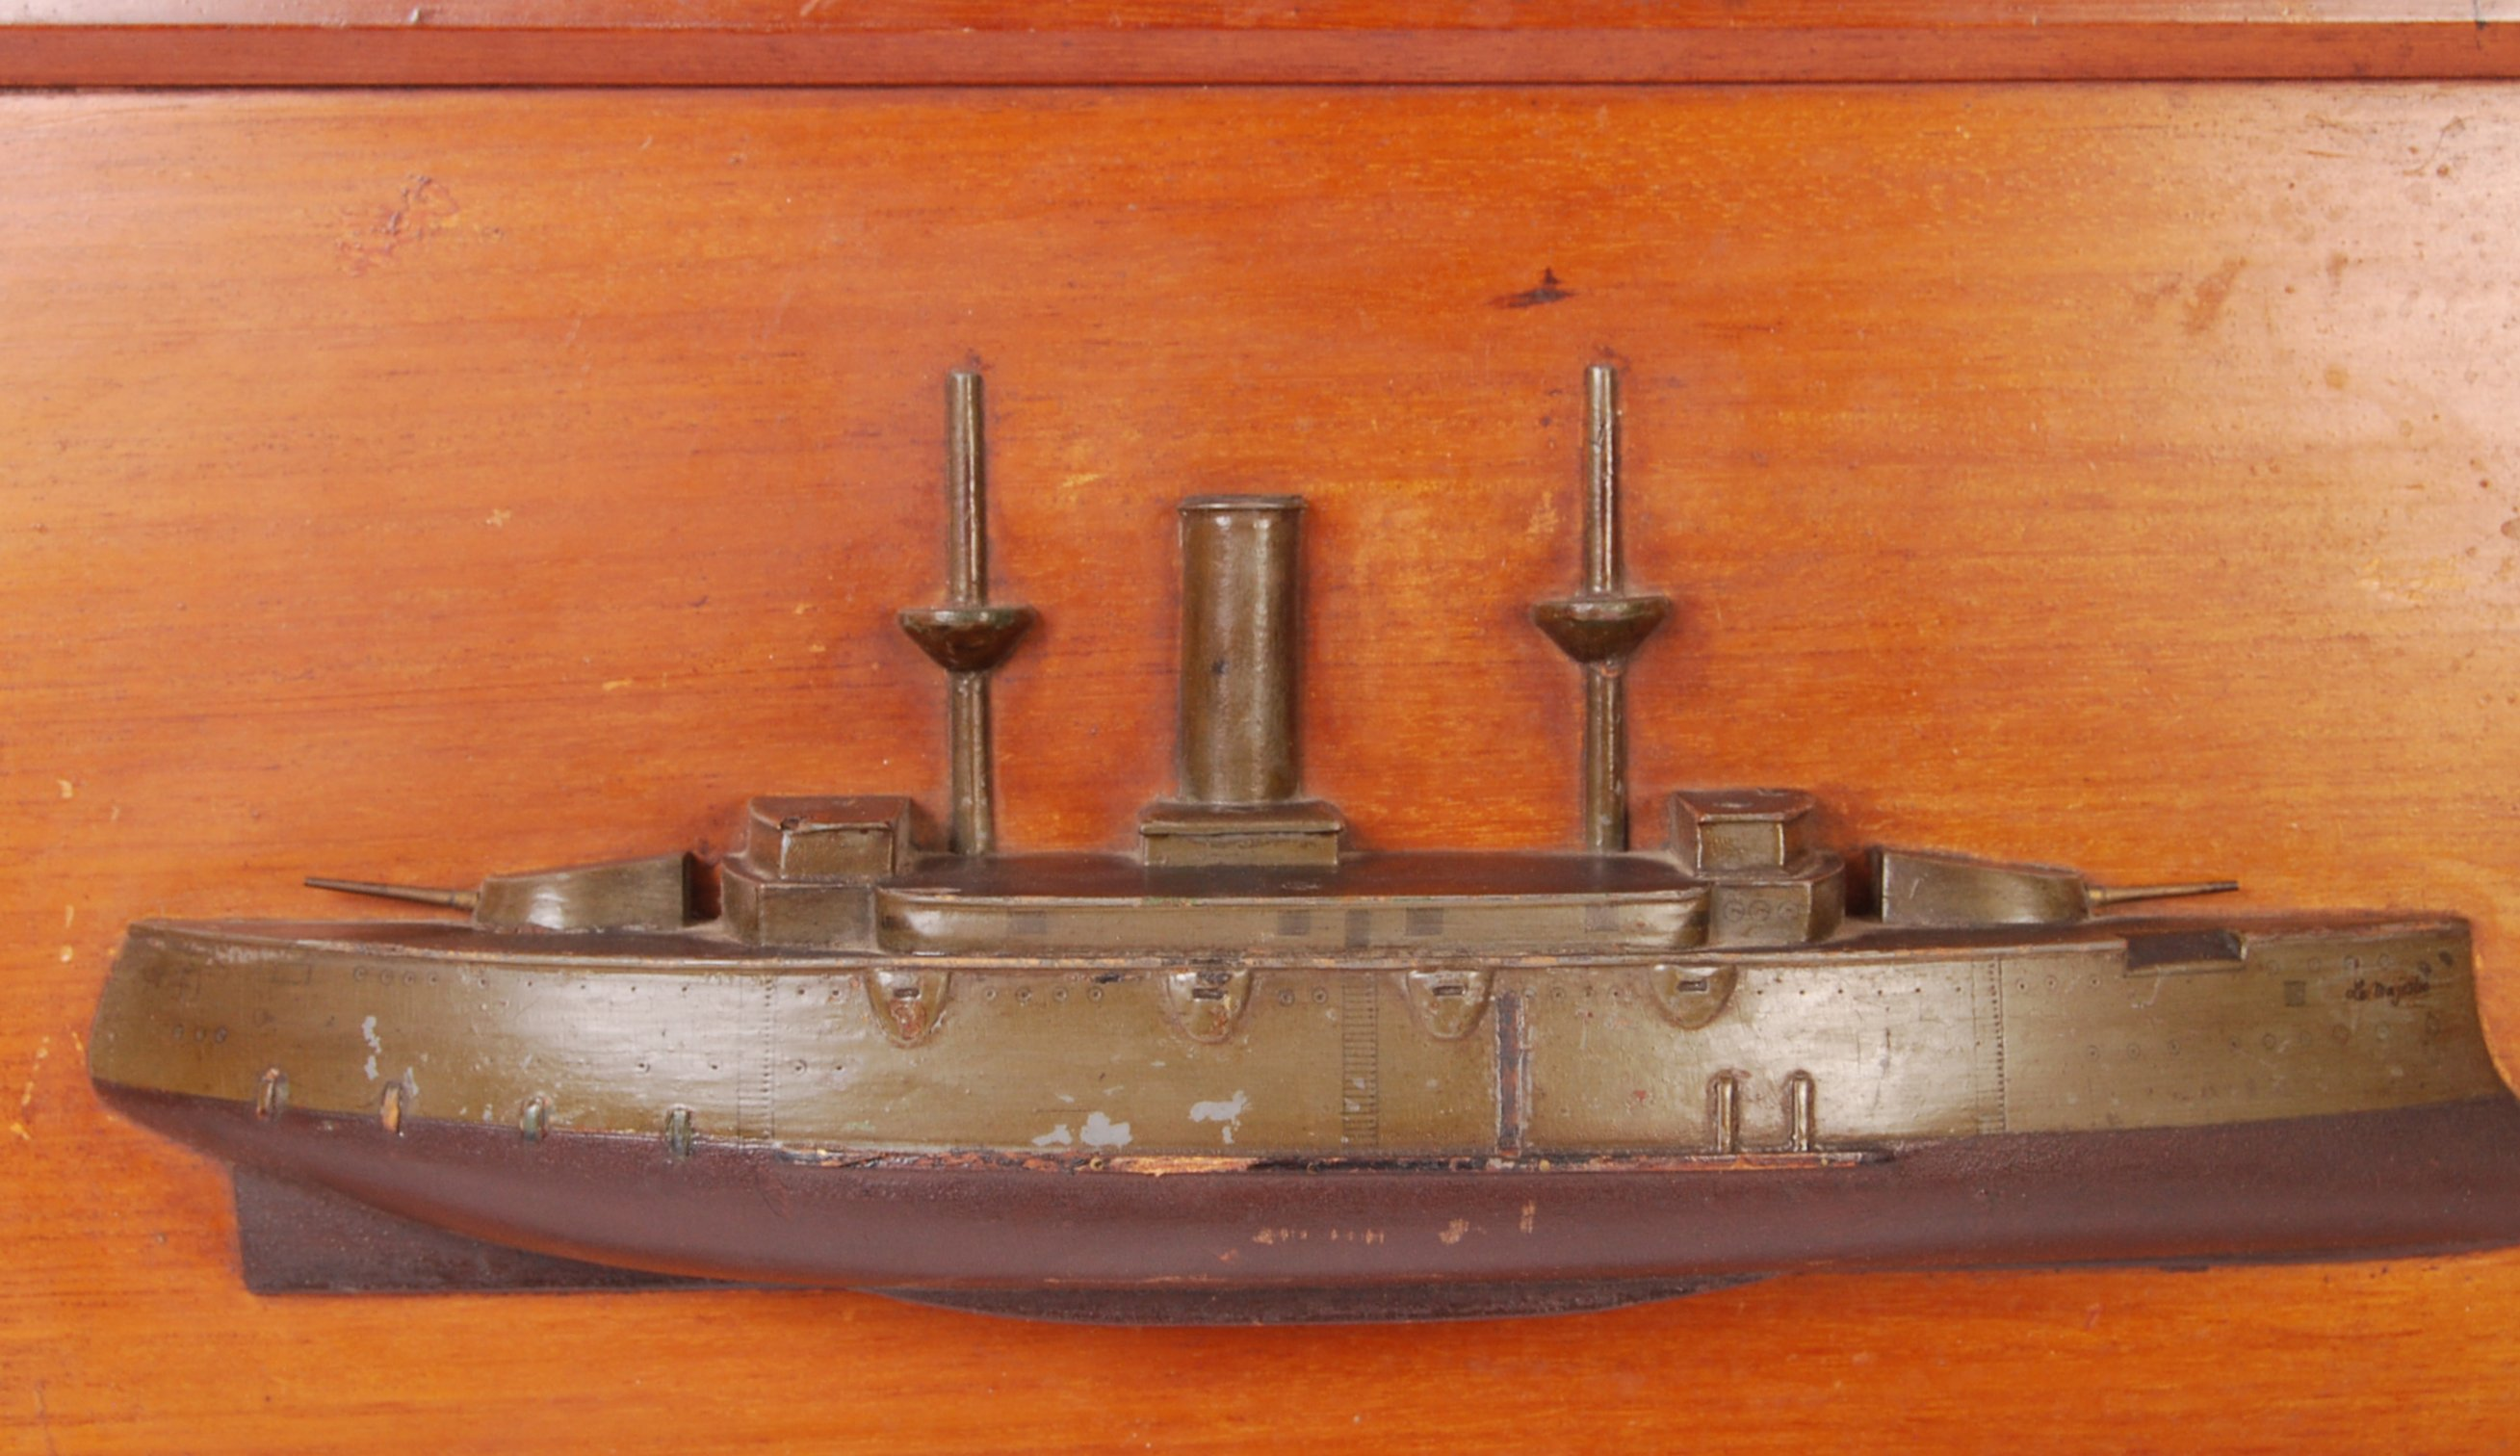 RARE WWI FRENCH HALF BLOCK MODEL OF AN IRONCLAD BATTERY - Image 2 of 4